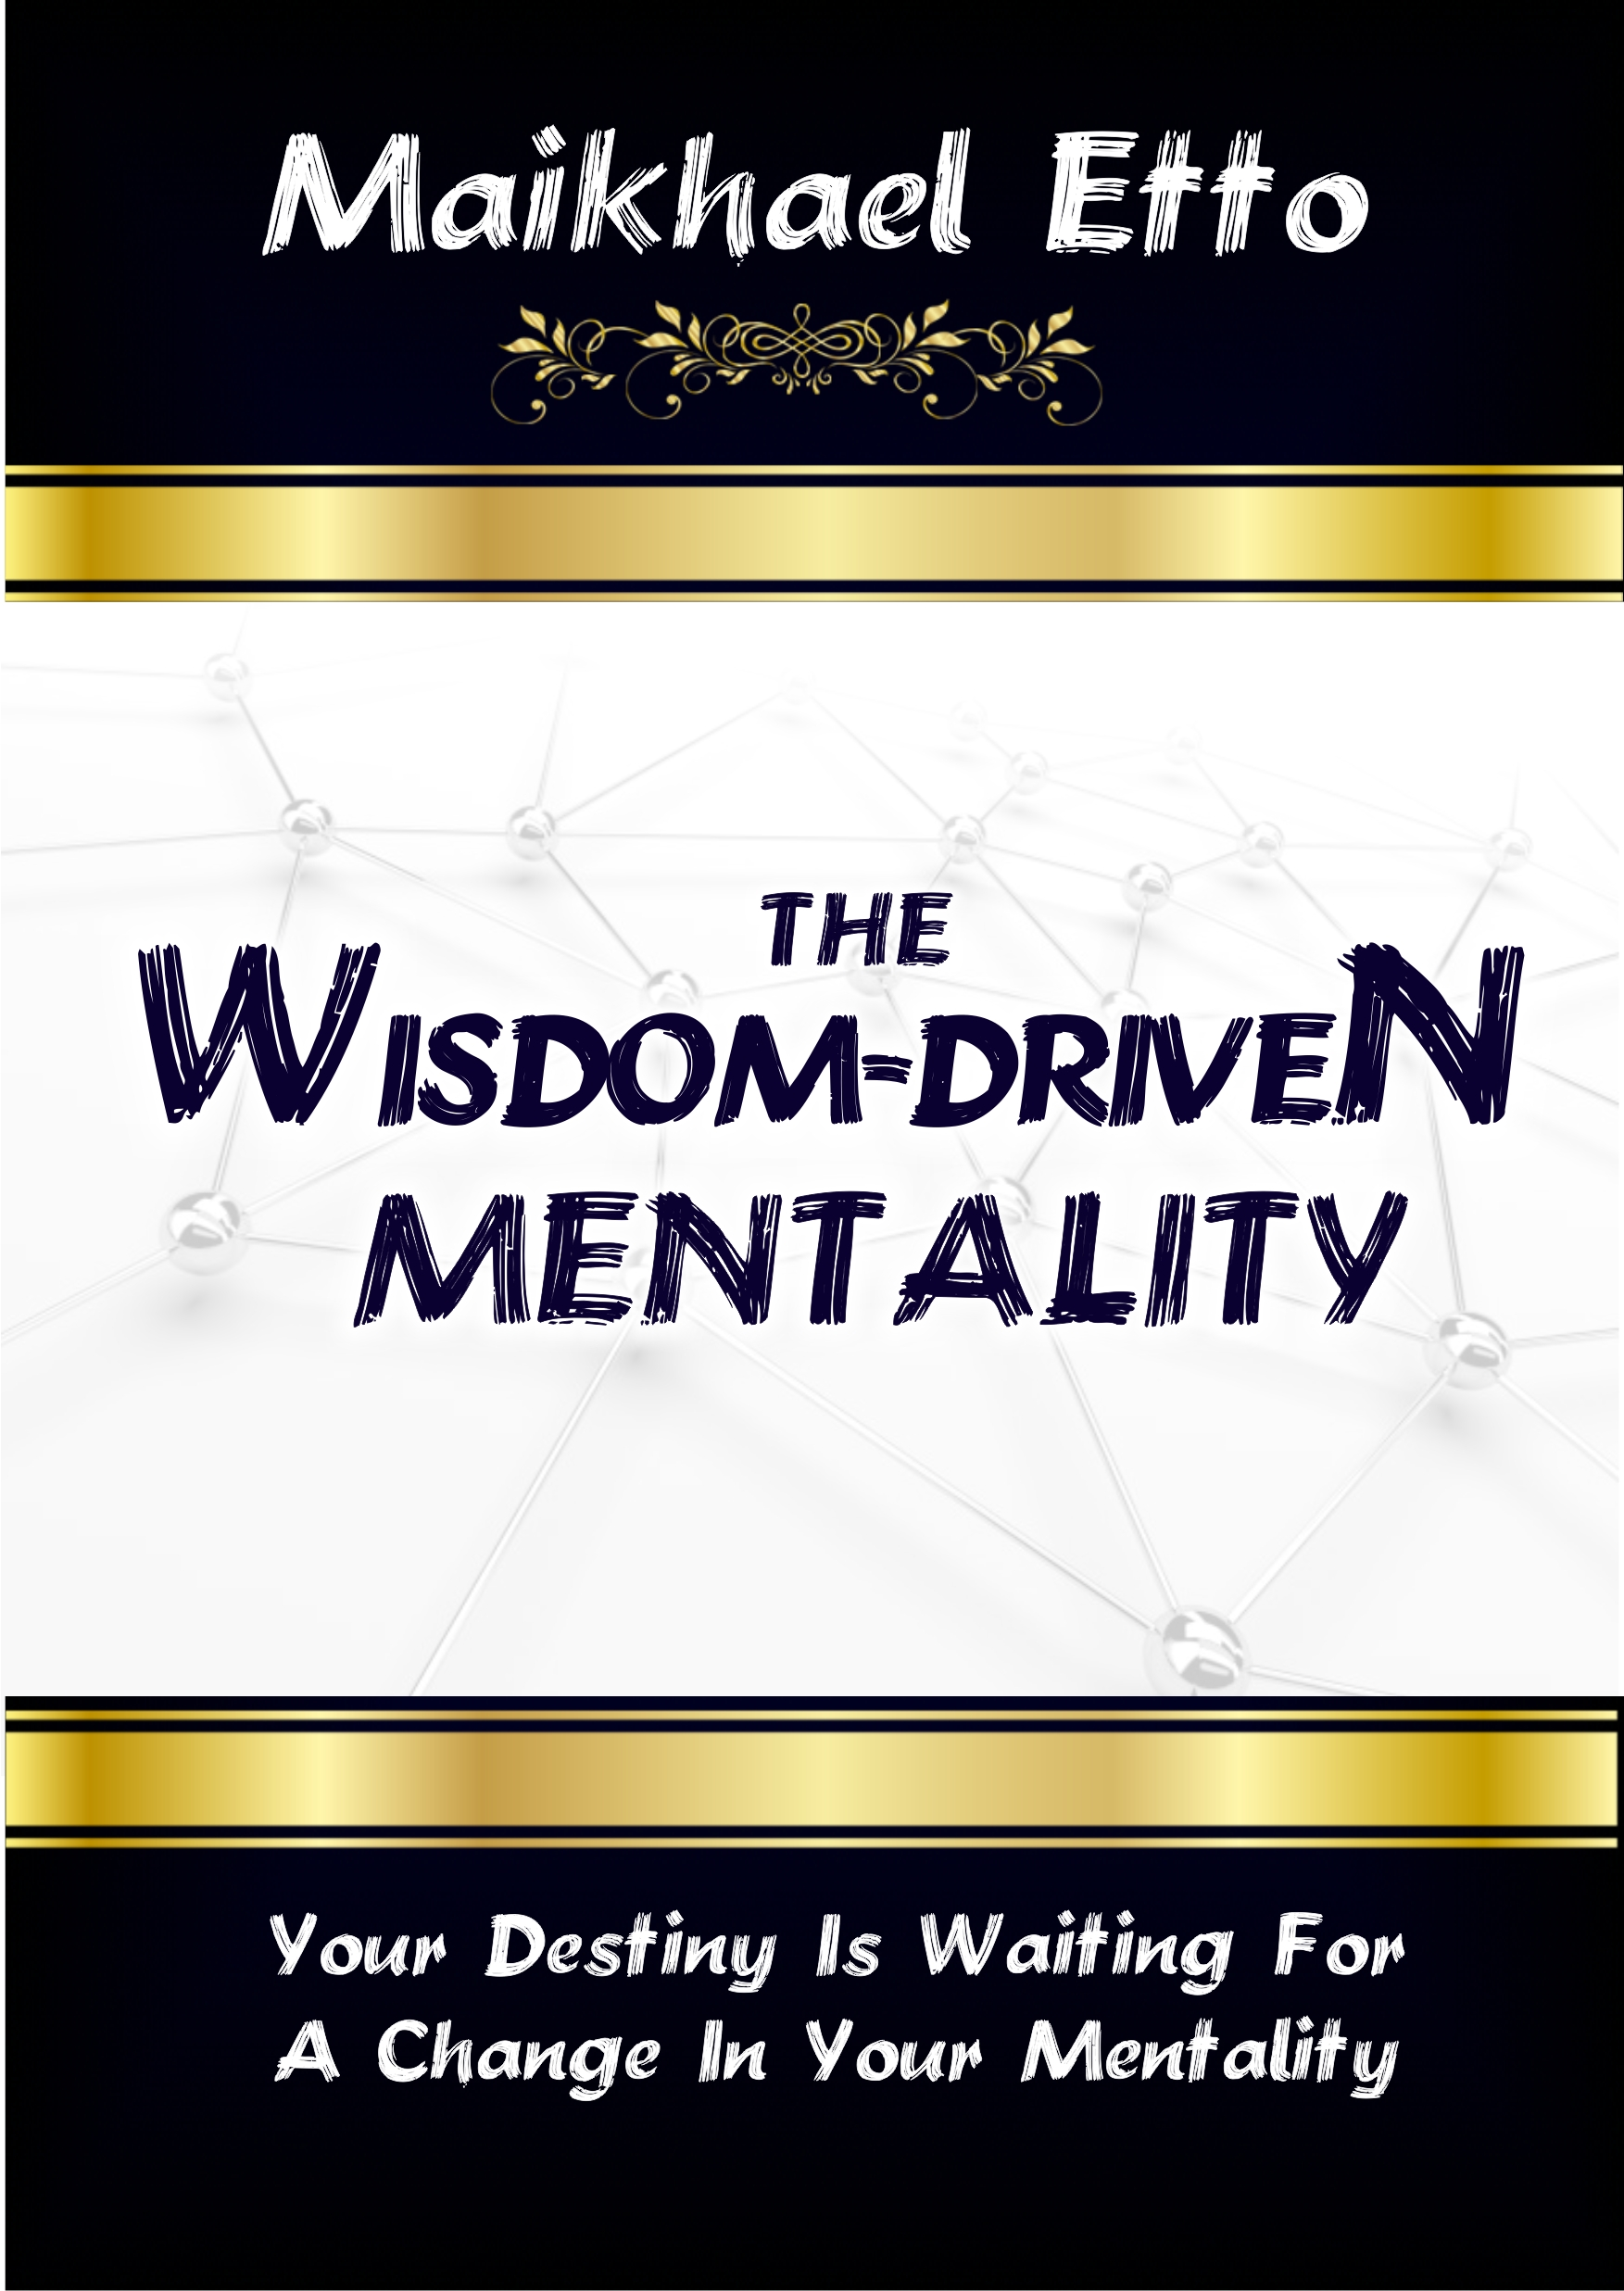 THE WISDOM-DRIVEN MENTALITY - Your Destiny Is Waiting For A Change In Your Mentality